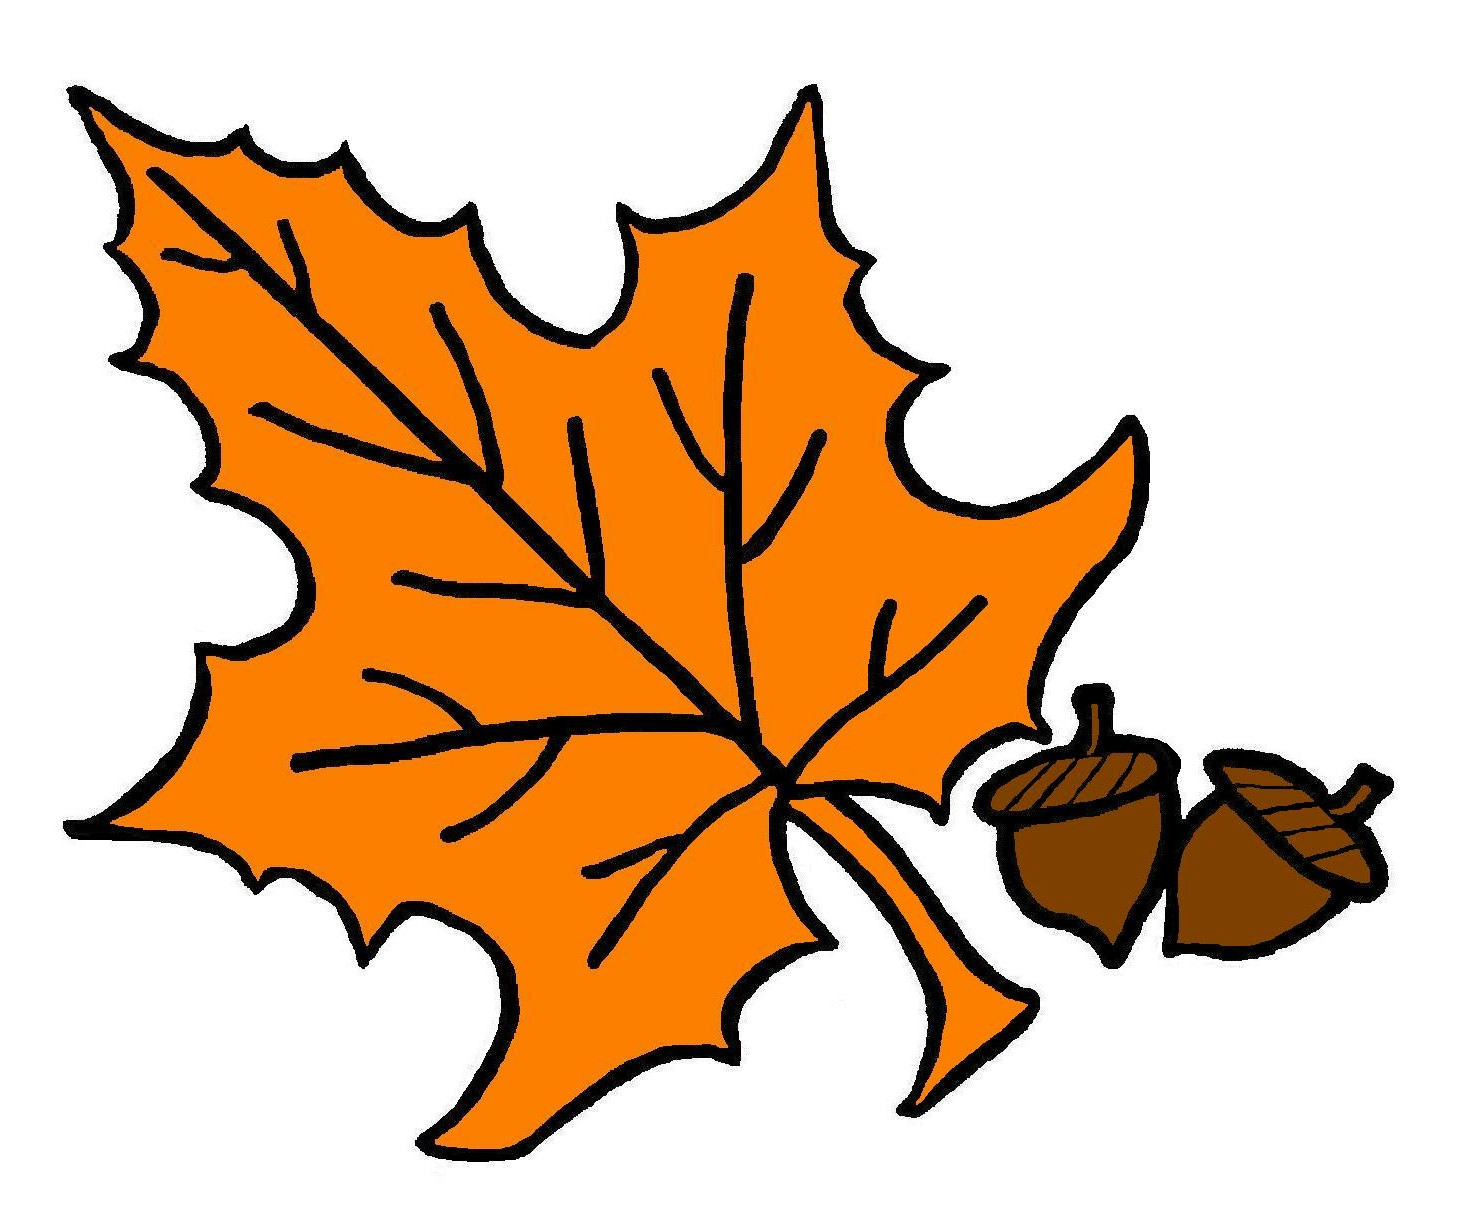 1457x1222 Fall Leaves Fall Leaf Clipart No Background Free Clipart Images 2